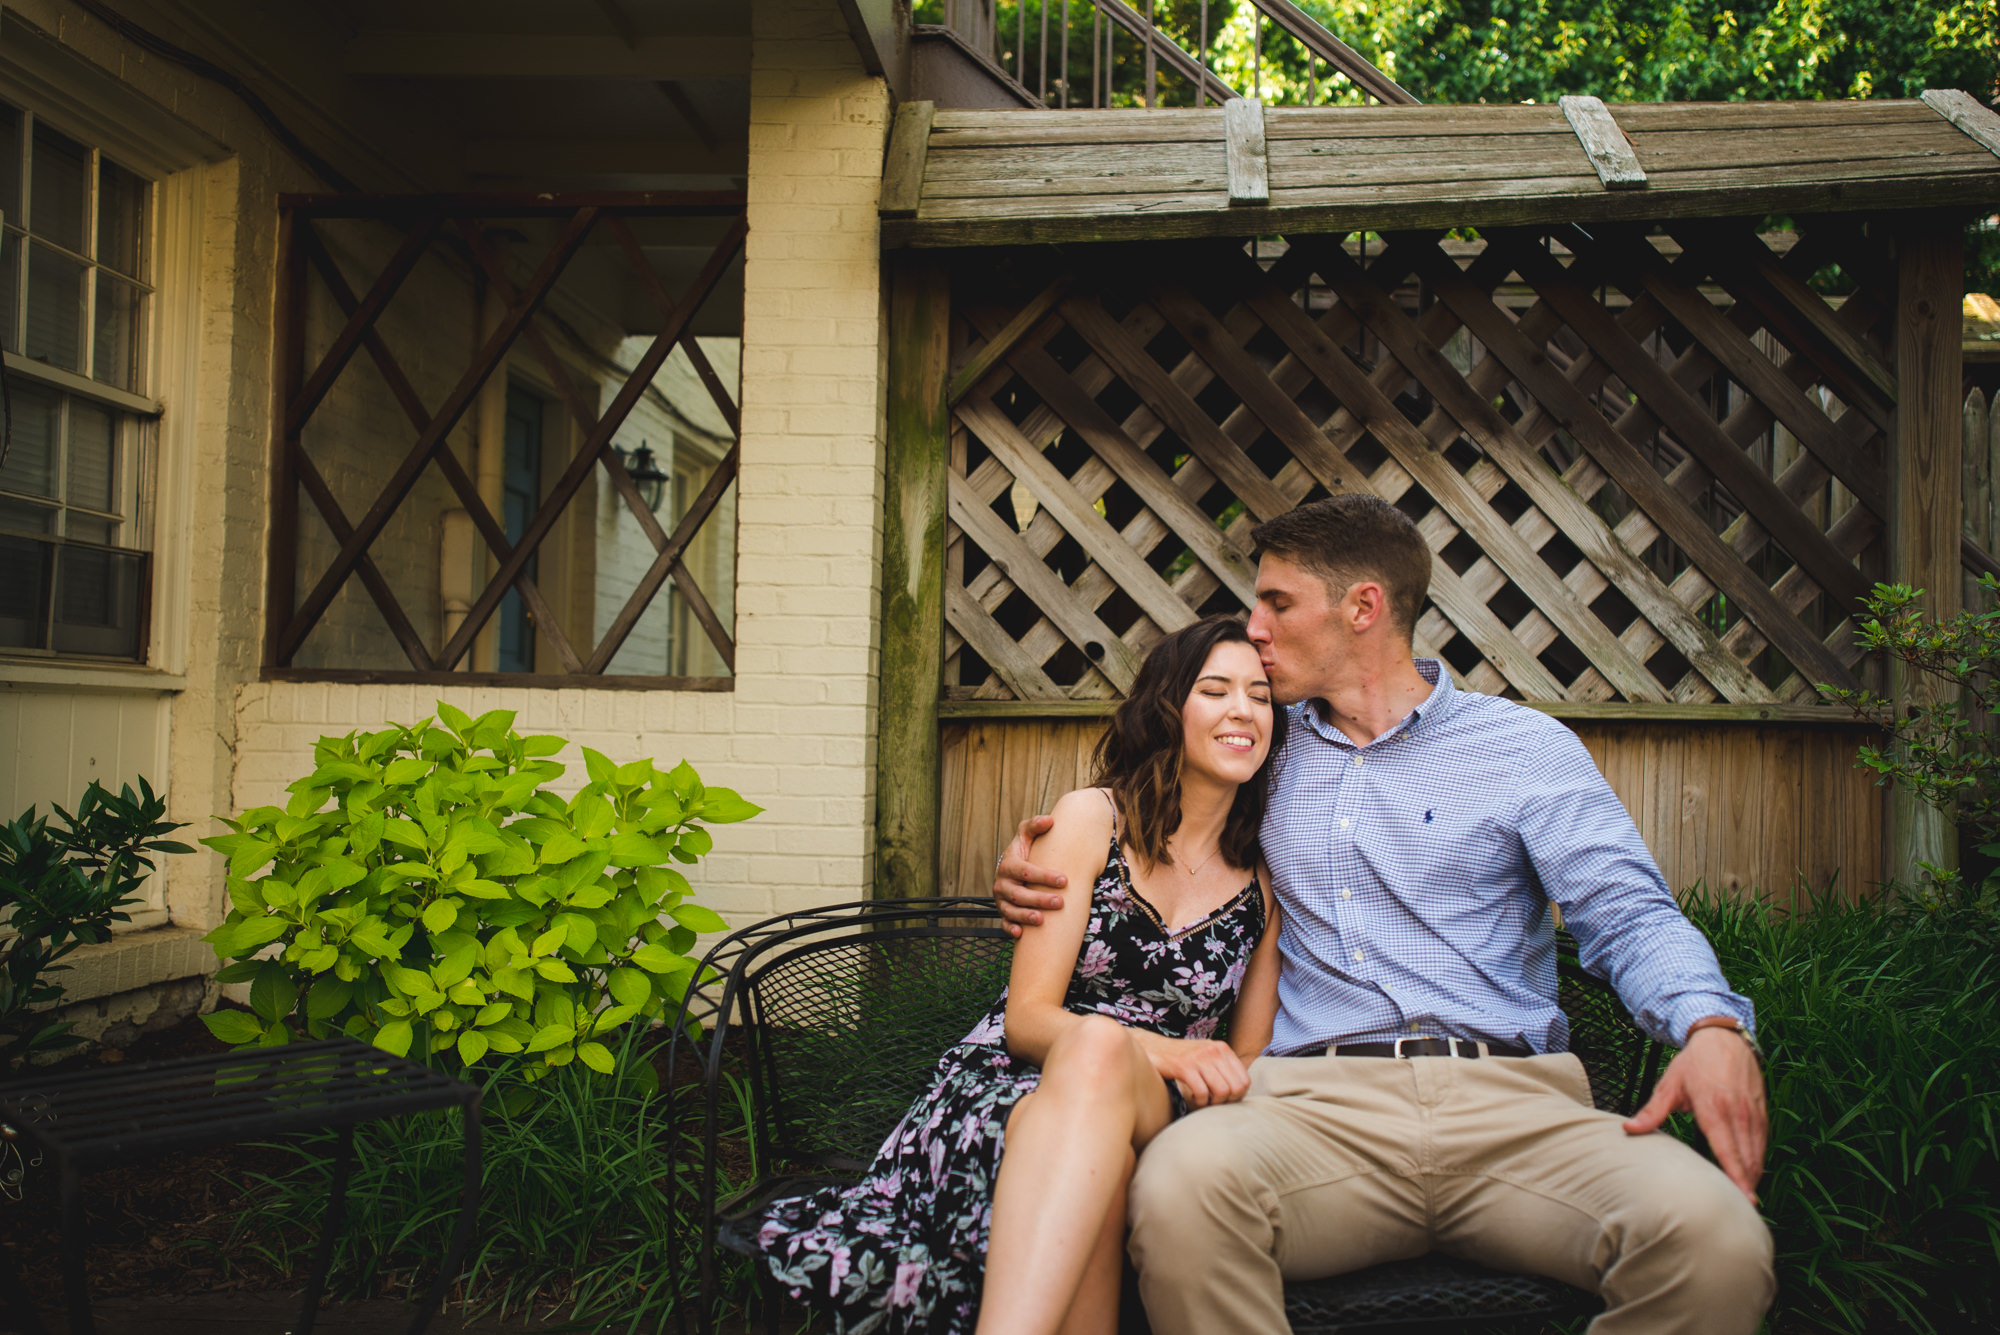 Alexandria-Old-Town-Elegant-Engagement-Pictures-by-Gabriele-Stonyte-Photography-9.jpg